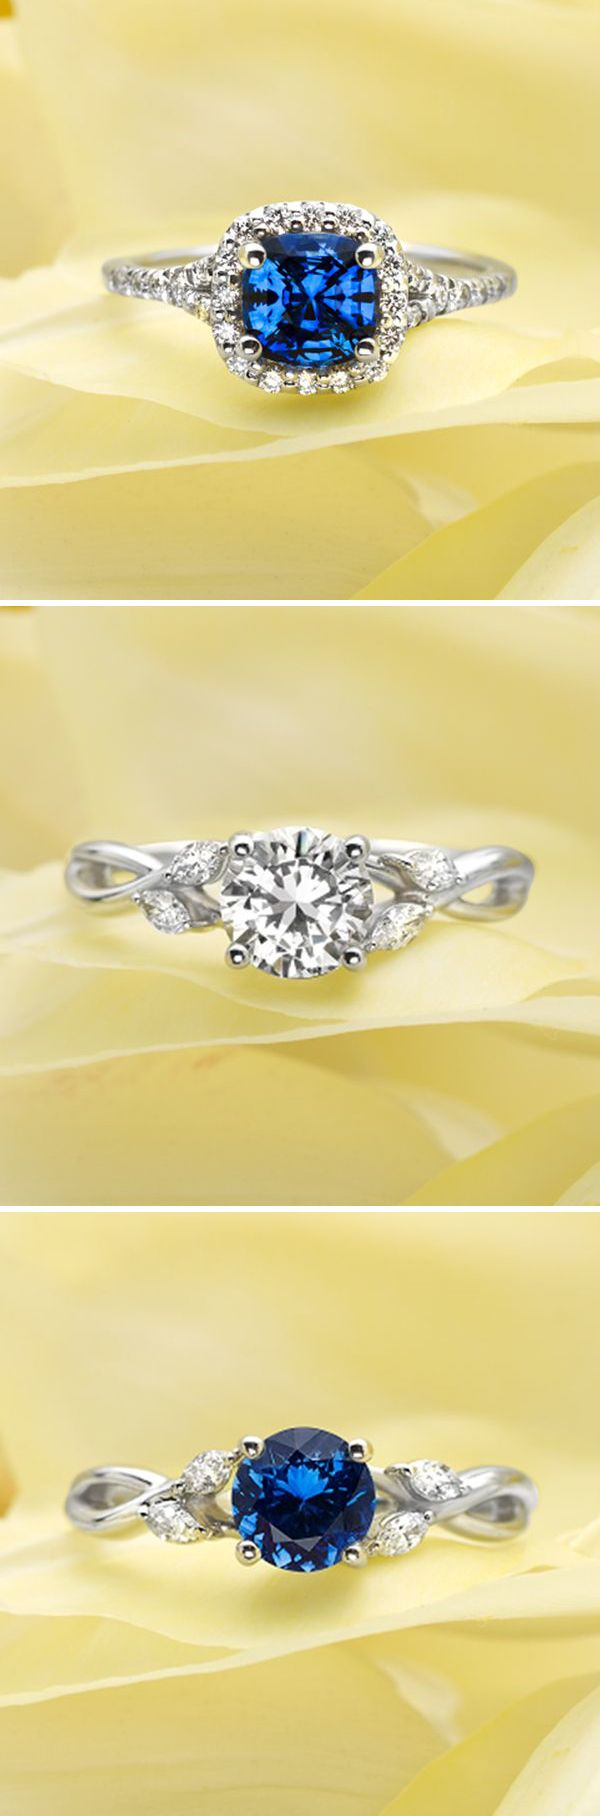 LOVE these rings! gorgeous designs for your #wedding